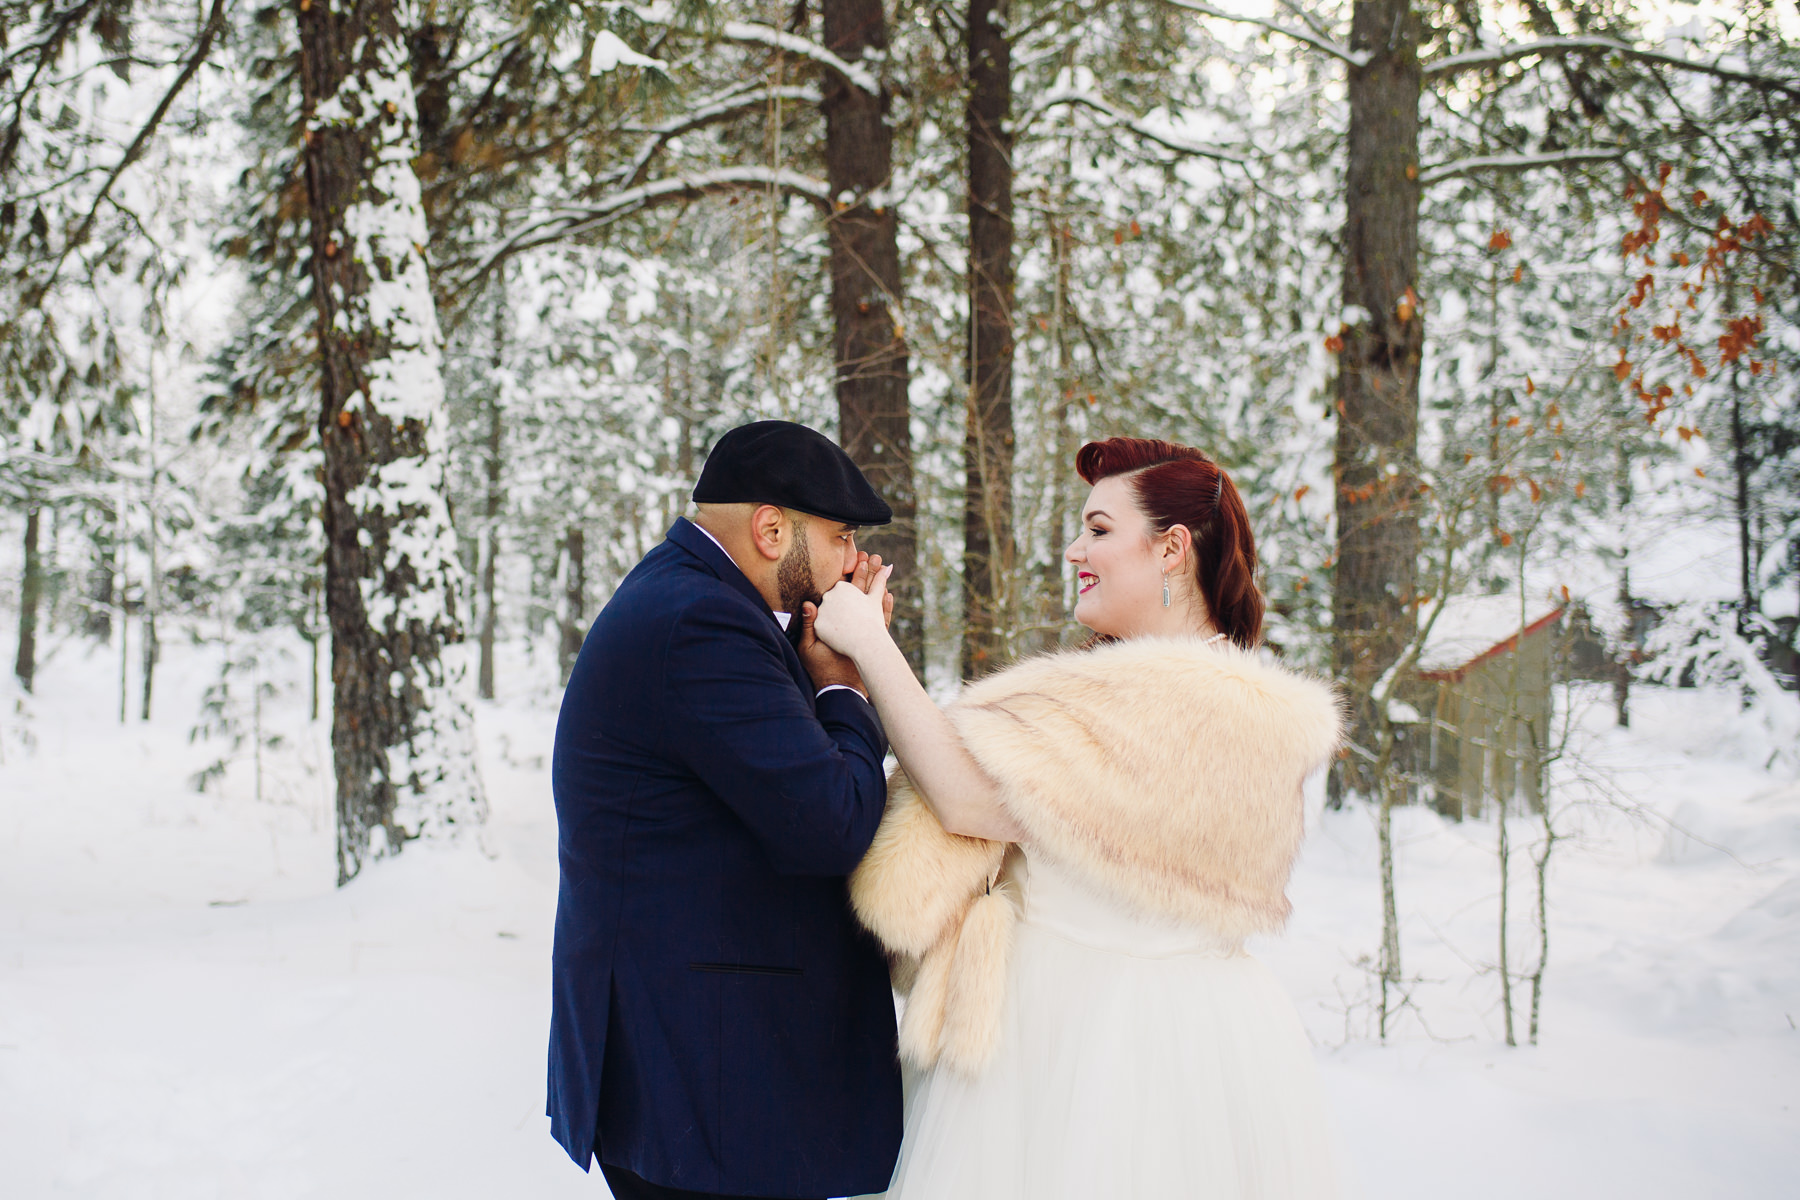 sleeping lady resort wedding in the snow